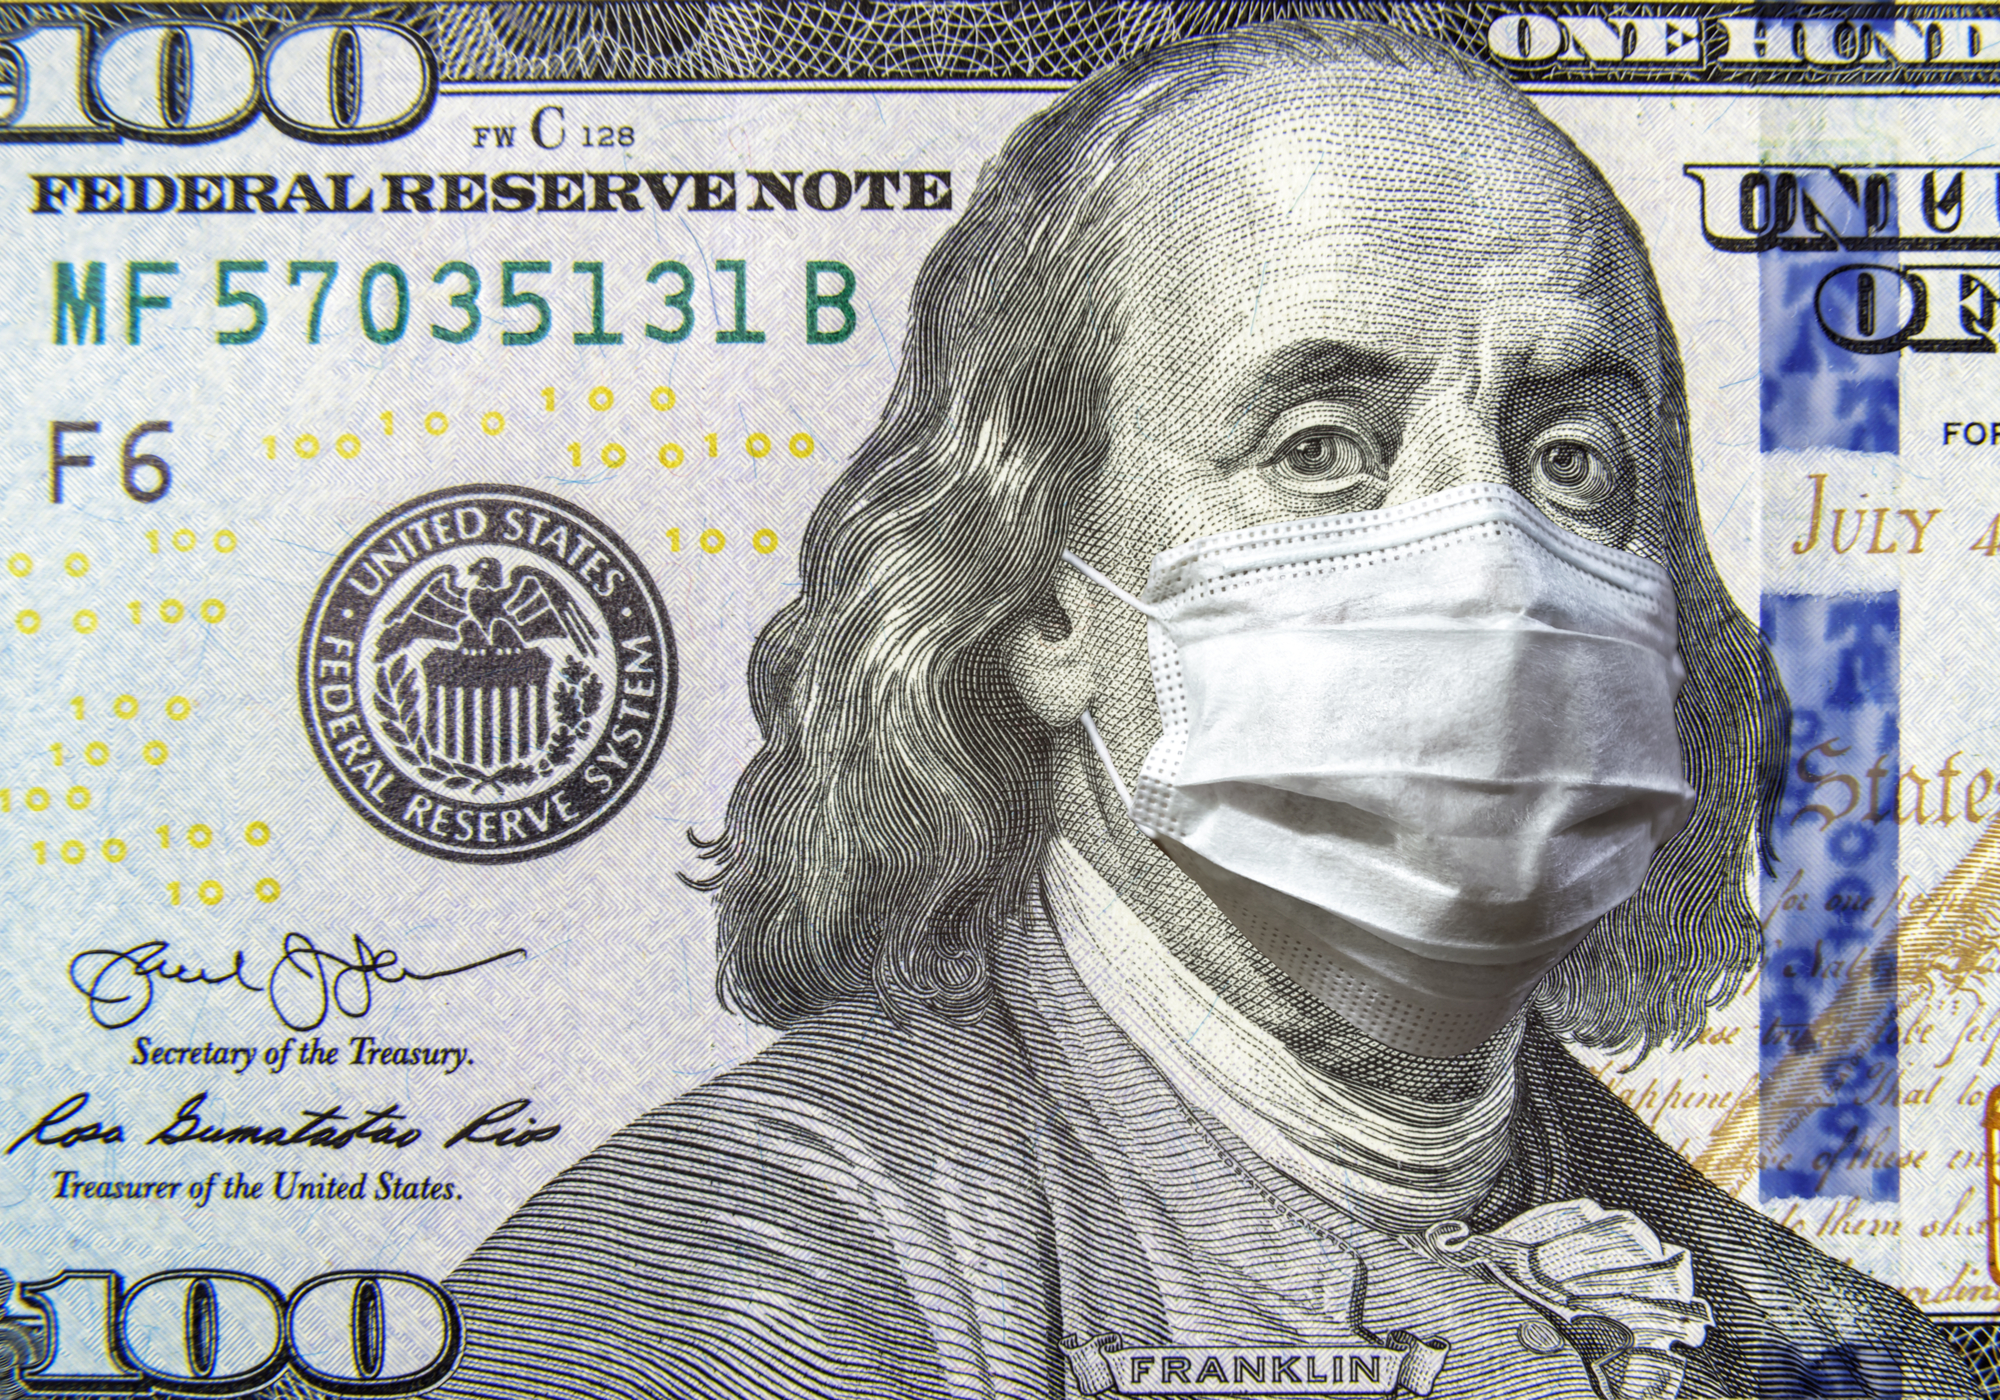 Startups: Five ways to find funding during the pandemic